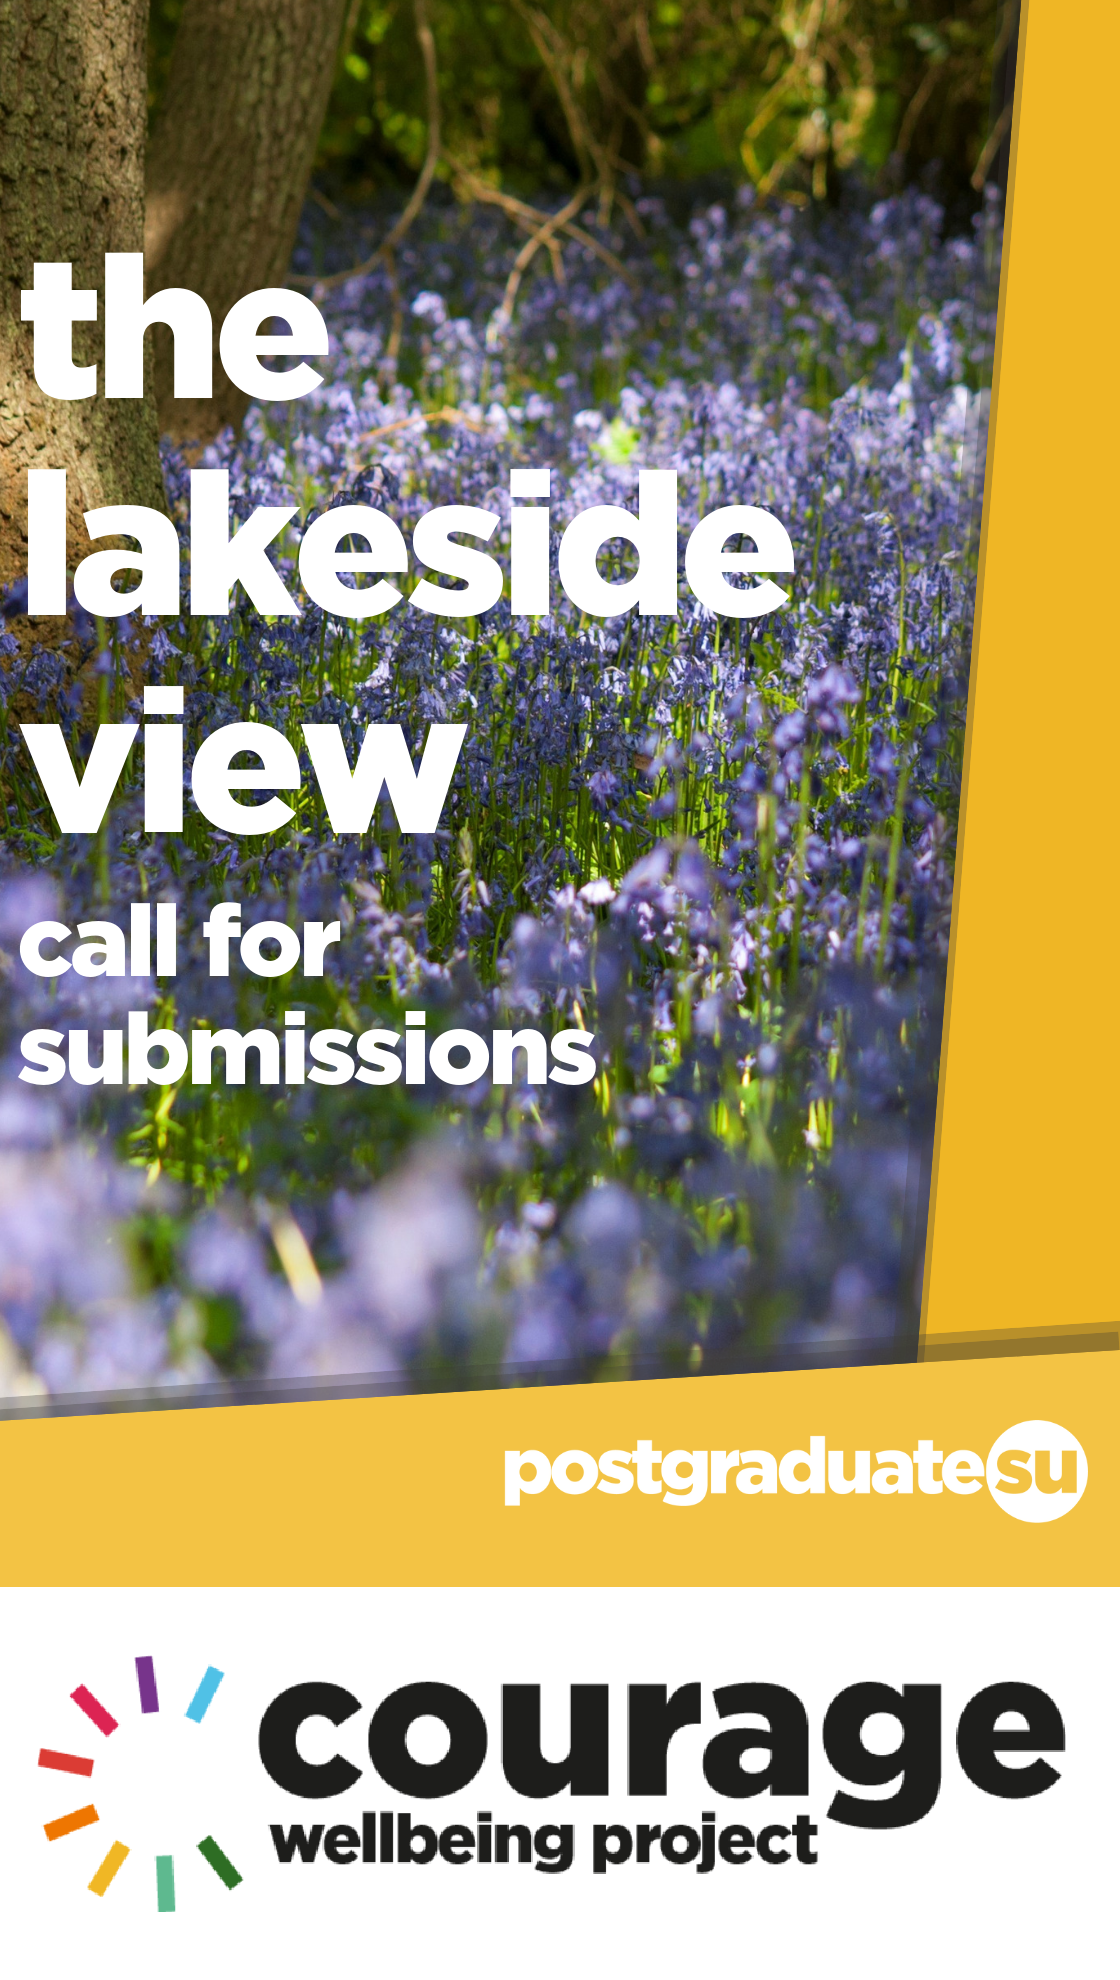 uea pgr thesis submission